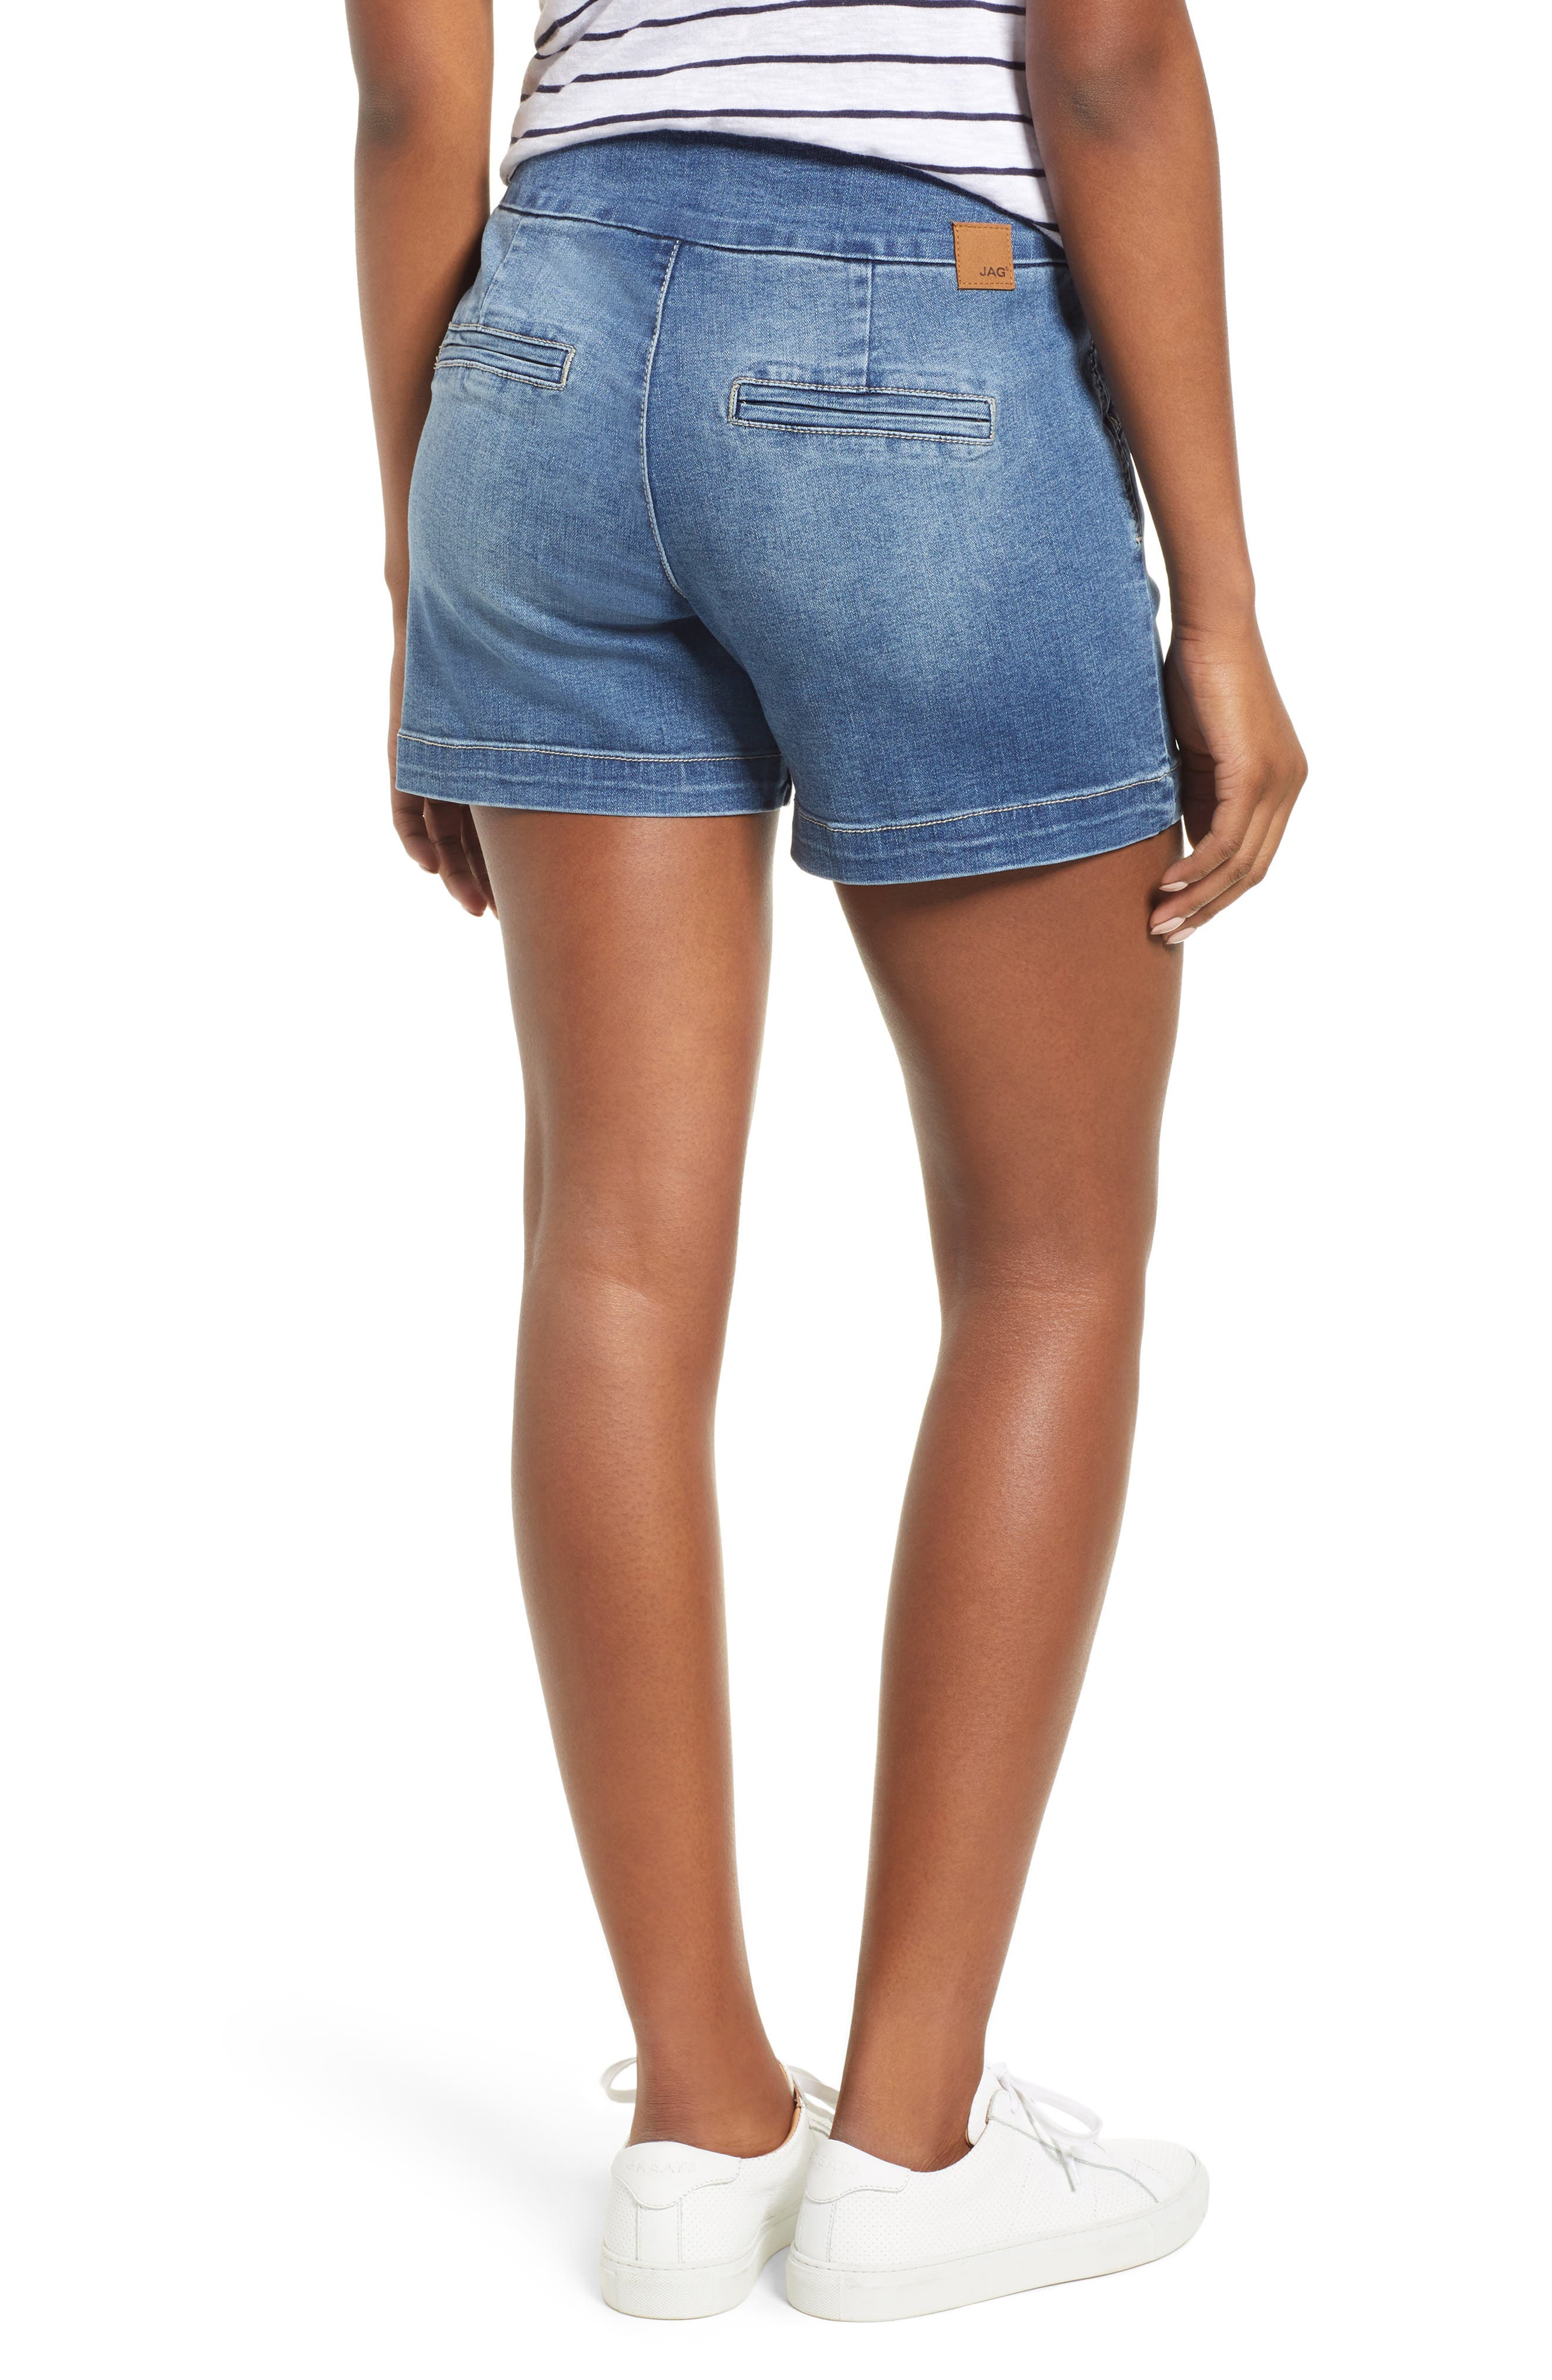 Ainsley 5 Denim Shorts,                             Alternate thumbnail 2, color,                             Med Indigo